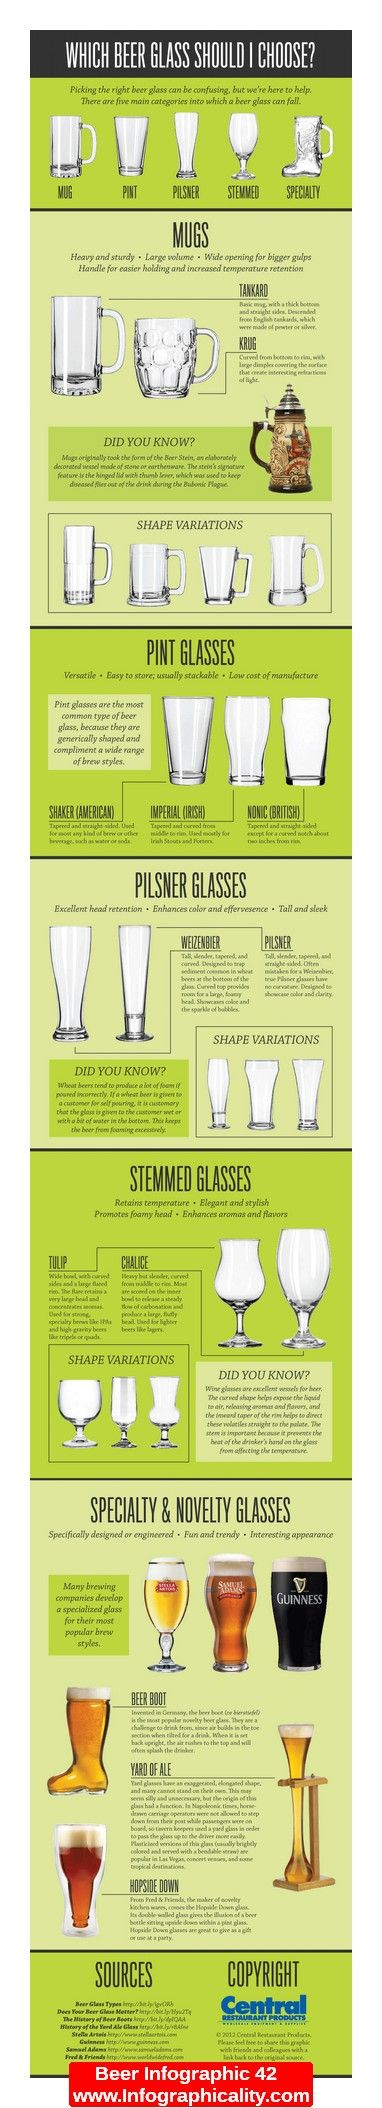 Beer Infographic 42 - http://infographicality.com/beer-infographic-42/